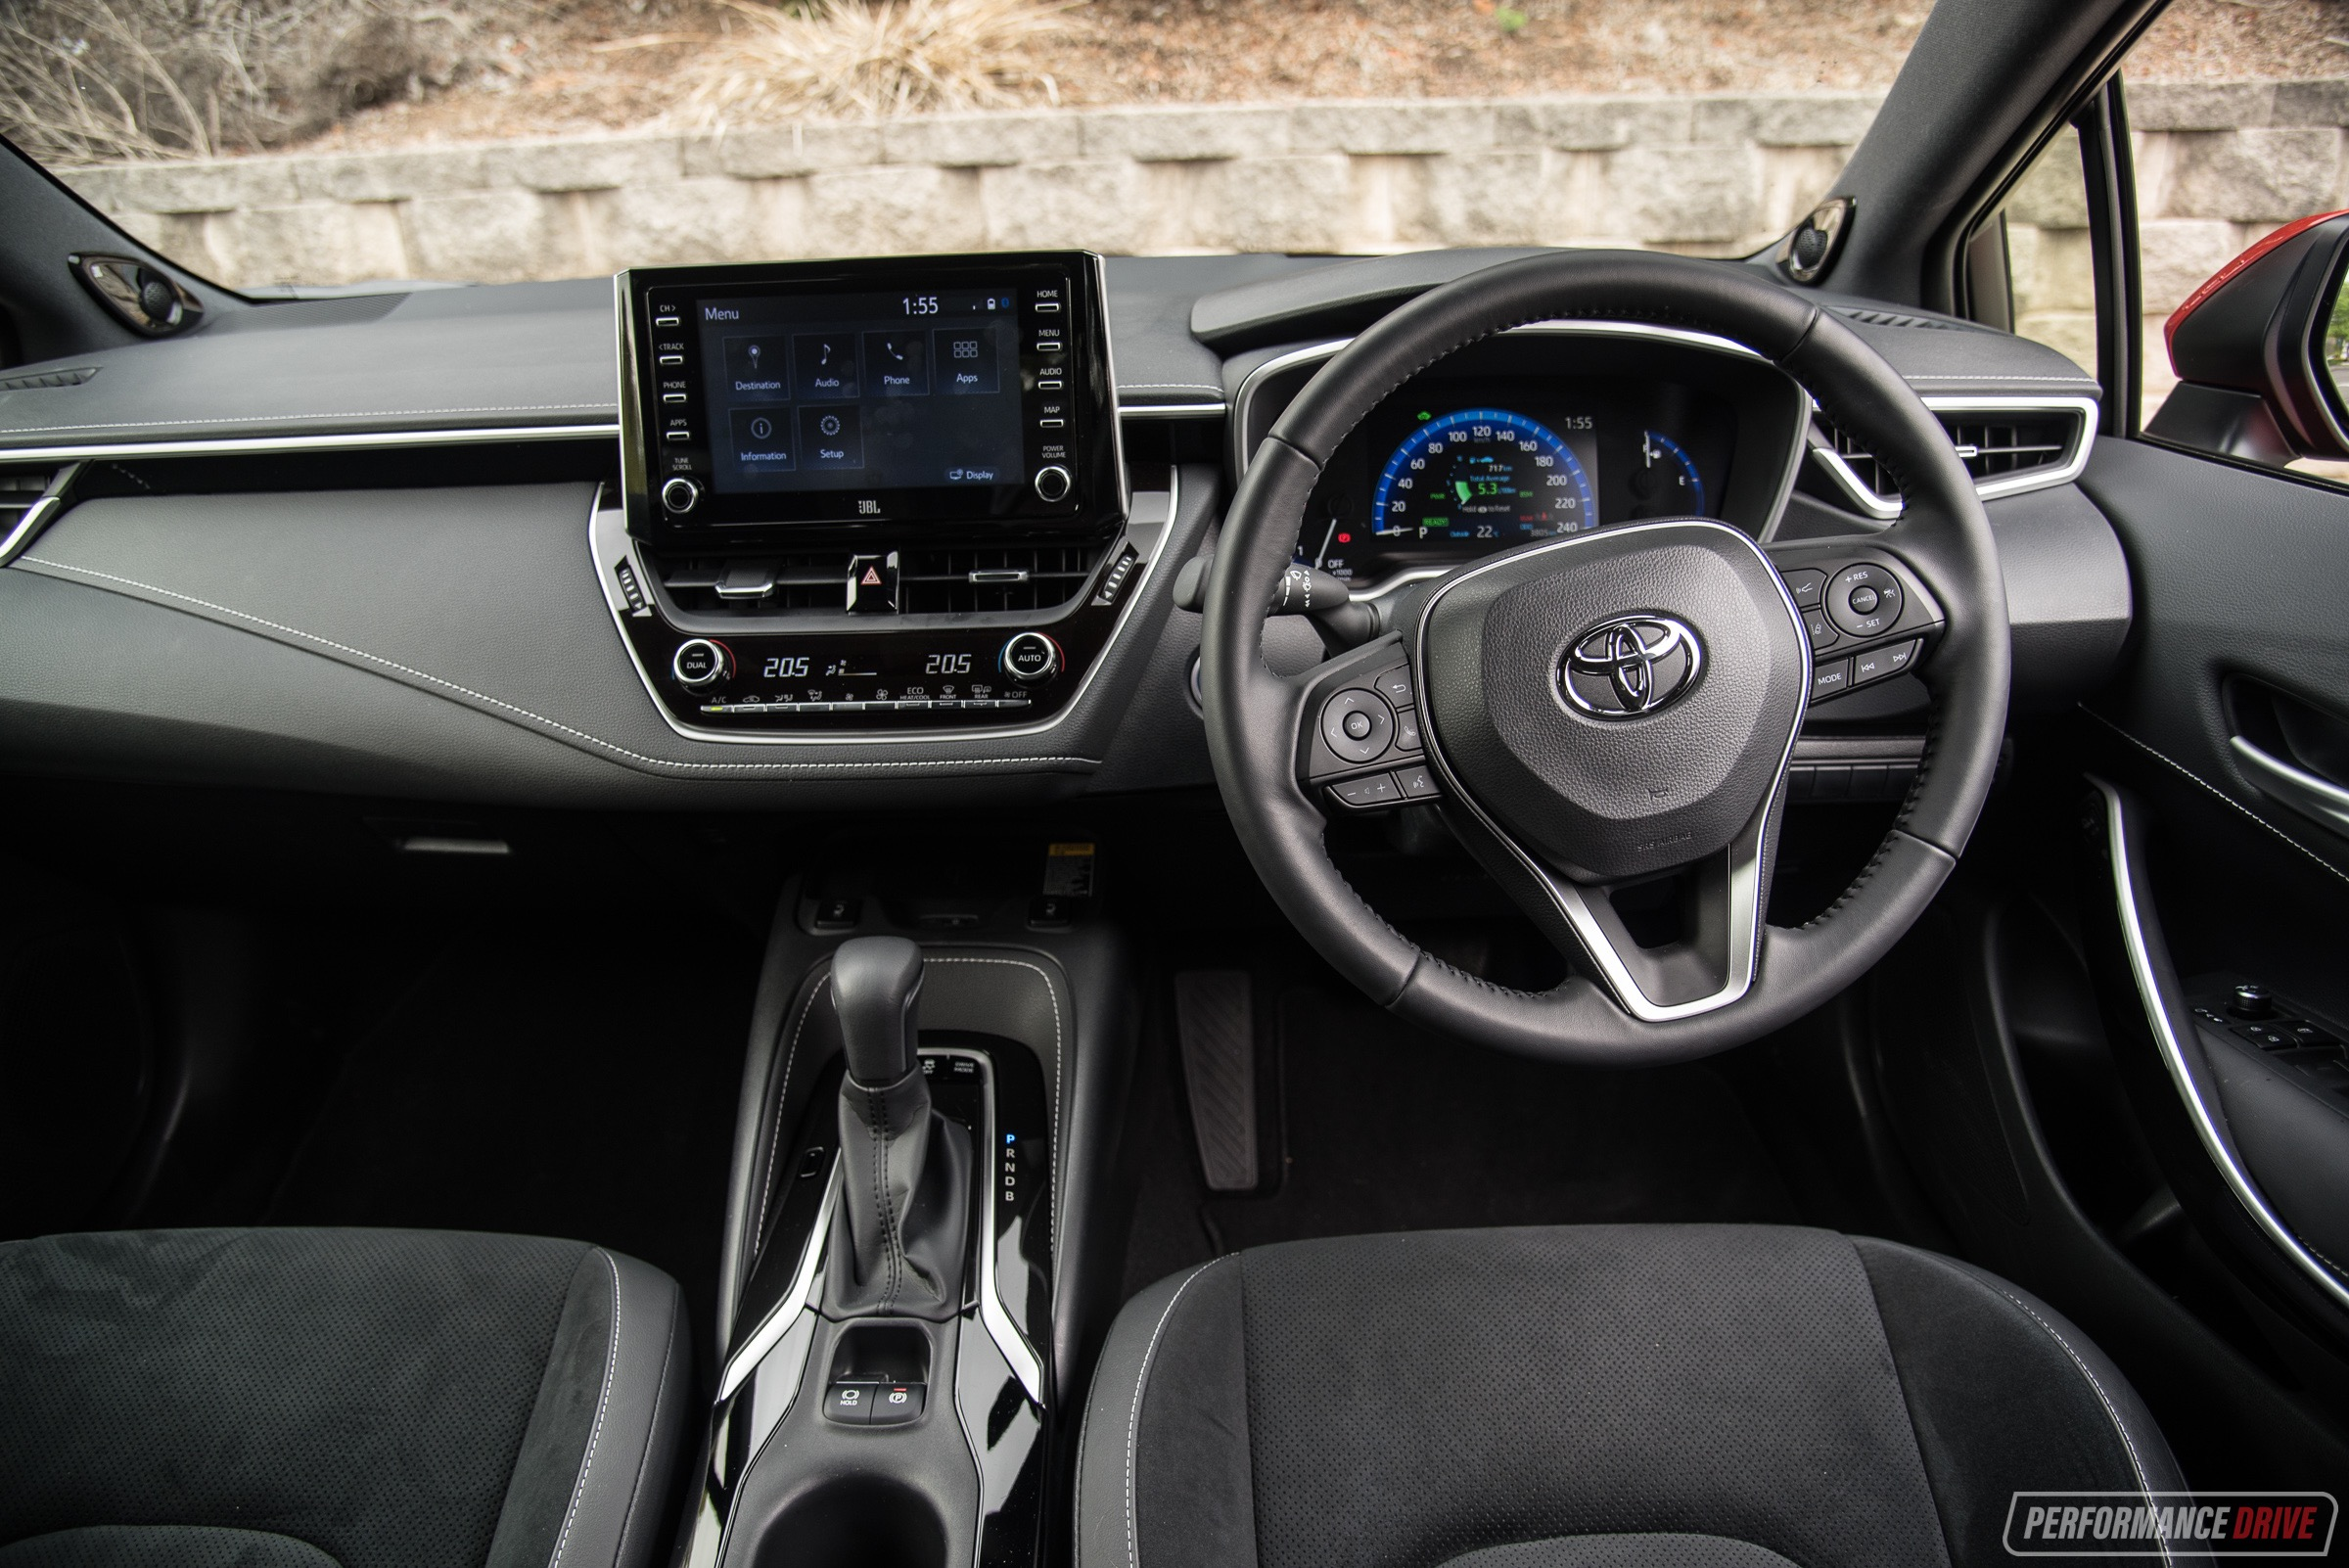 2019 Toyota Corolla Zr Hybrid Review Video Performancedrive